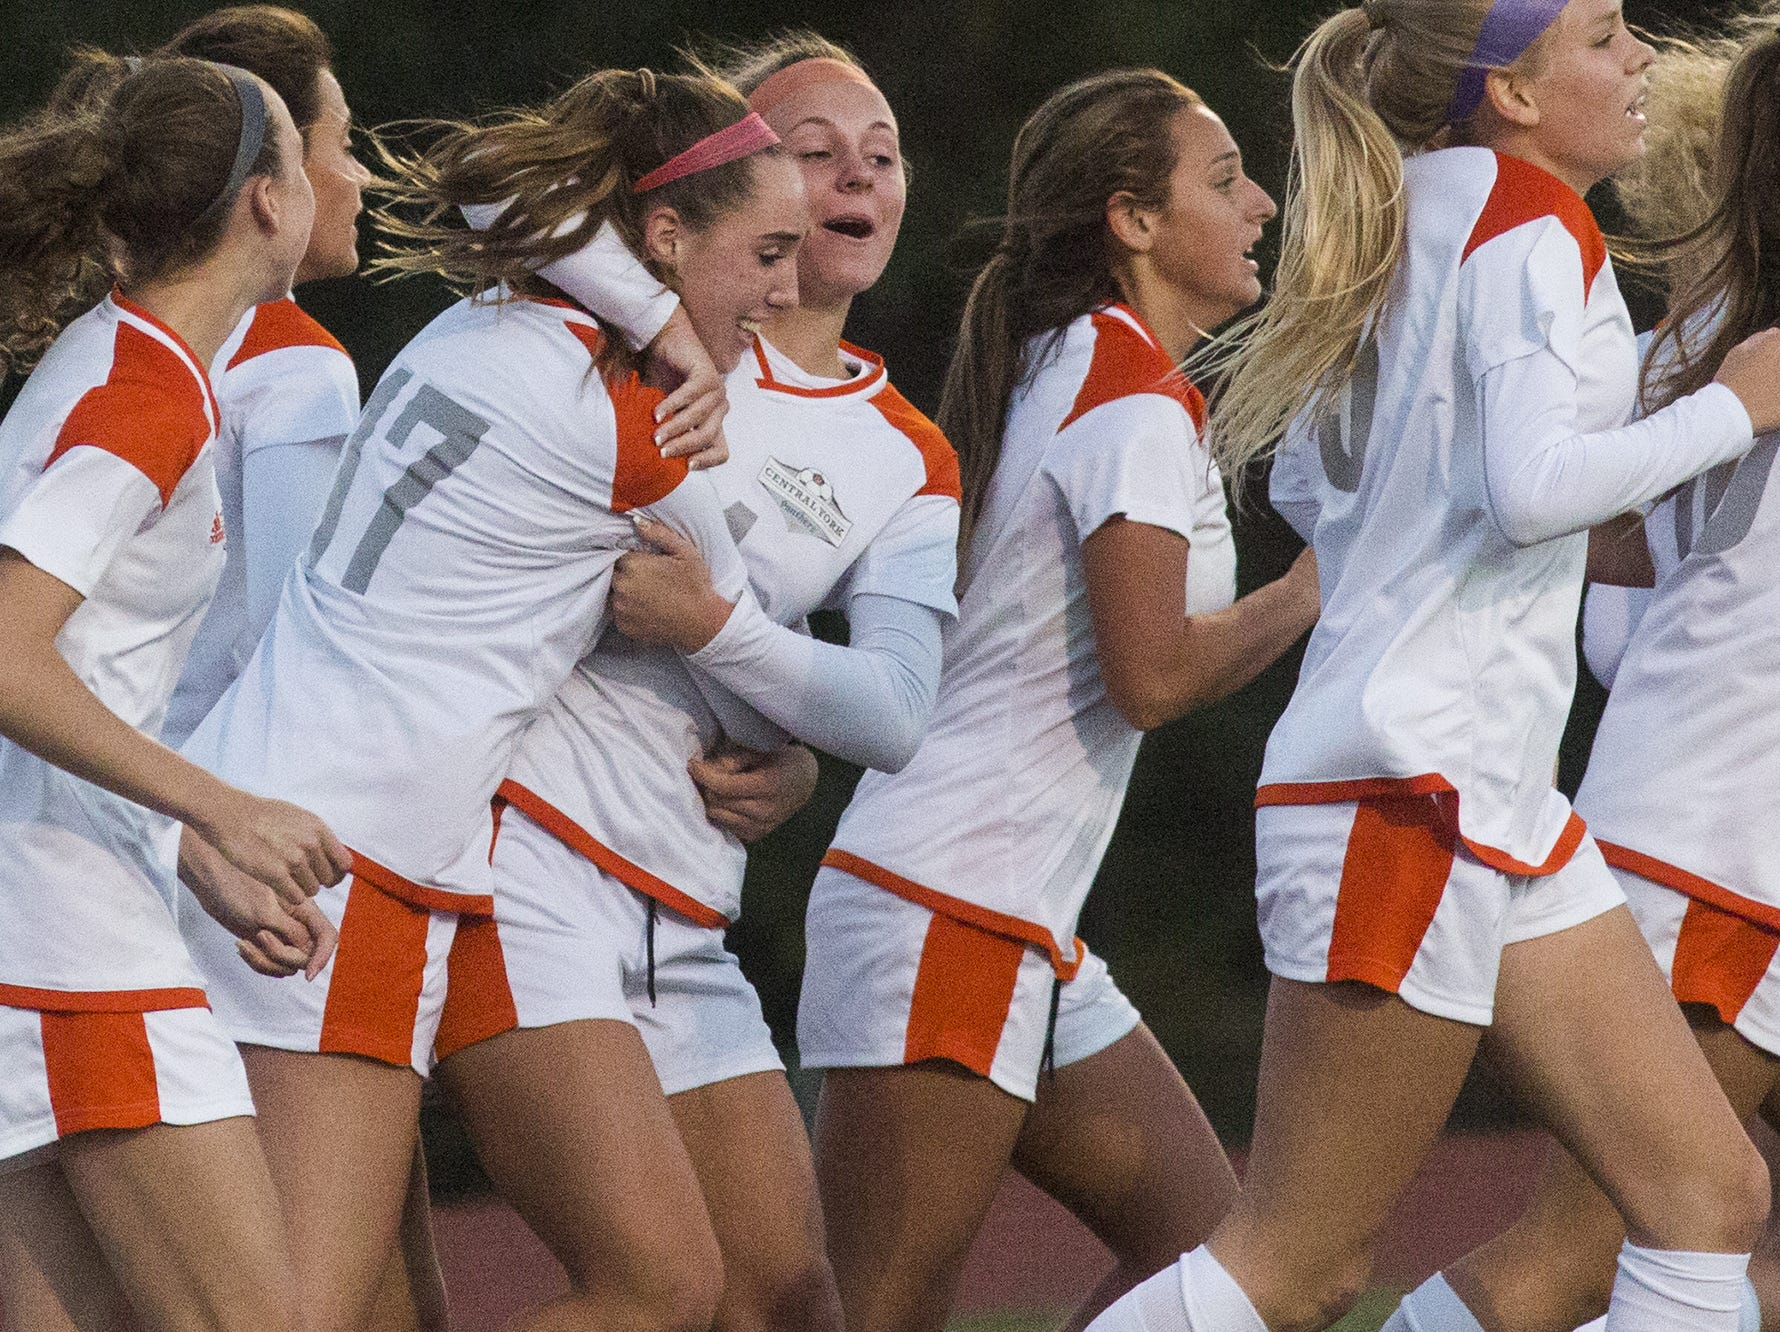 Central York's Katelyn Mair, third from left, gets a hug from her teammate, Madi Davis, center, after Mair scored the game's only goal. Central York defeats Red Lion 1-0 in the YAIAA girls' soccer championship game at Northeastern High School in Manchester, Saturday, October 20, 2018.